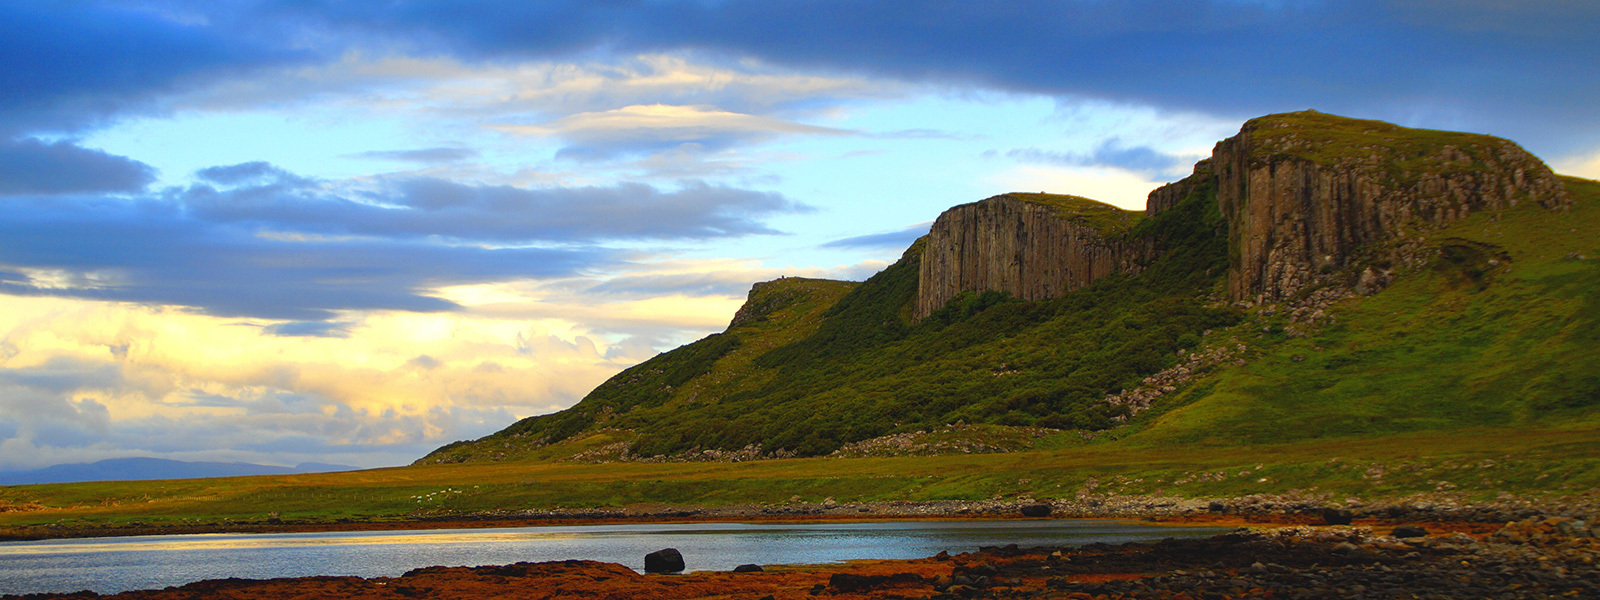 Staffin_obnaron_header_3.jpg